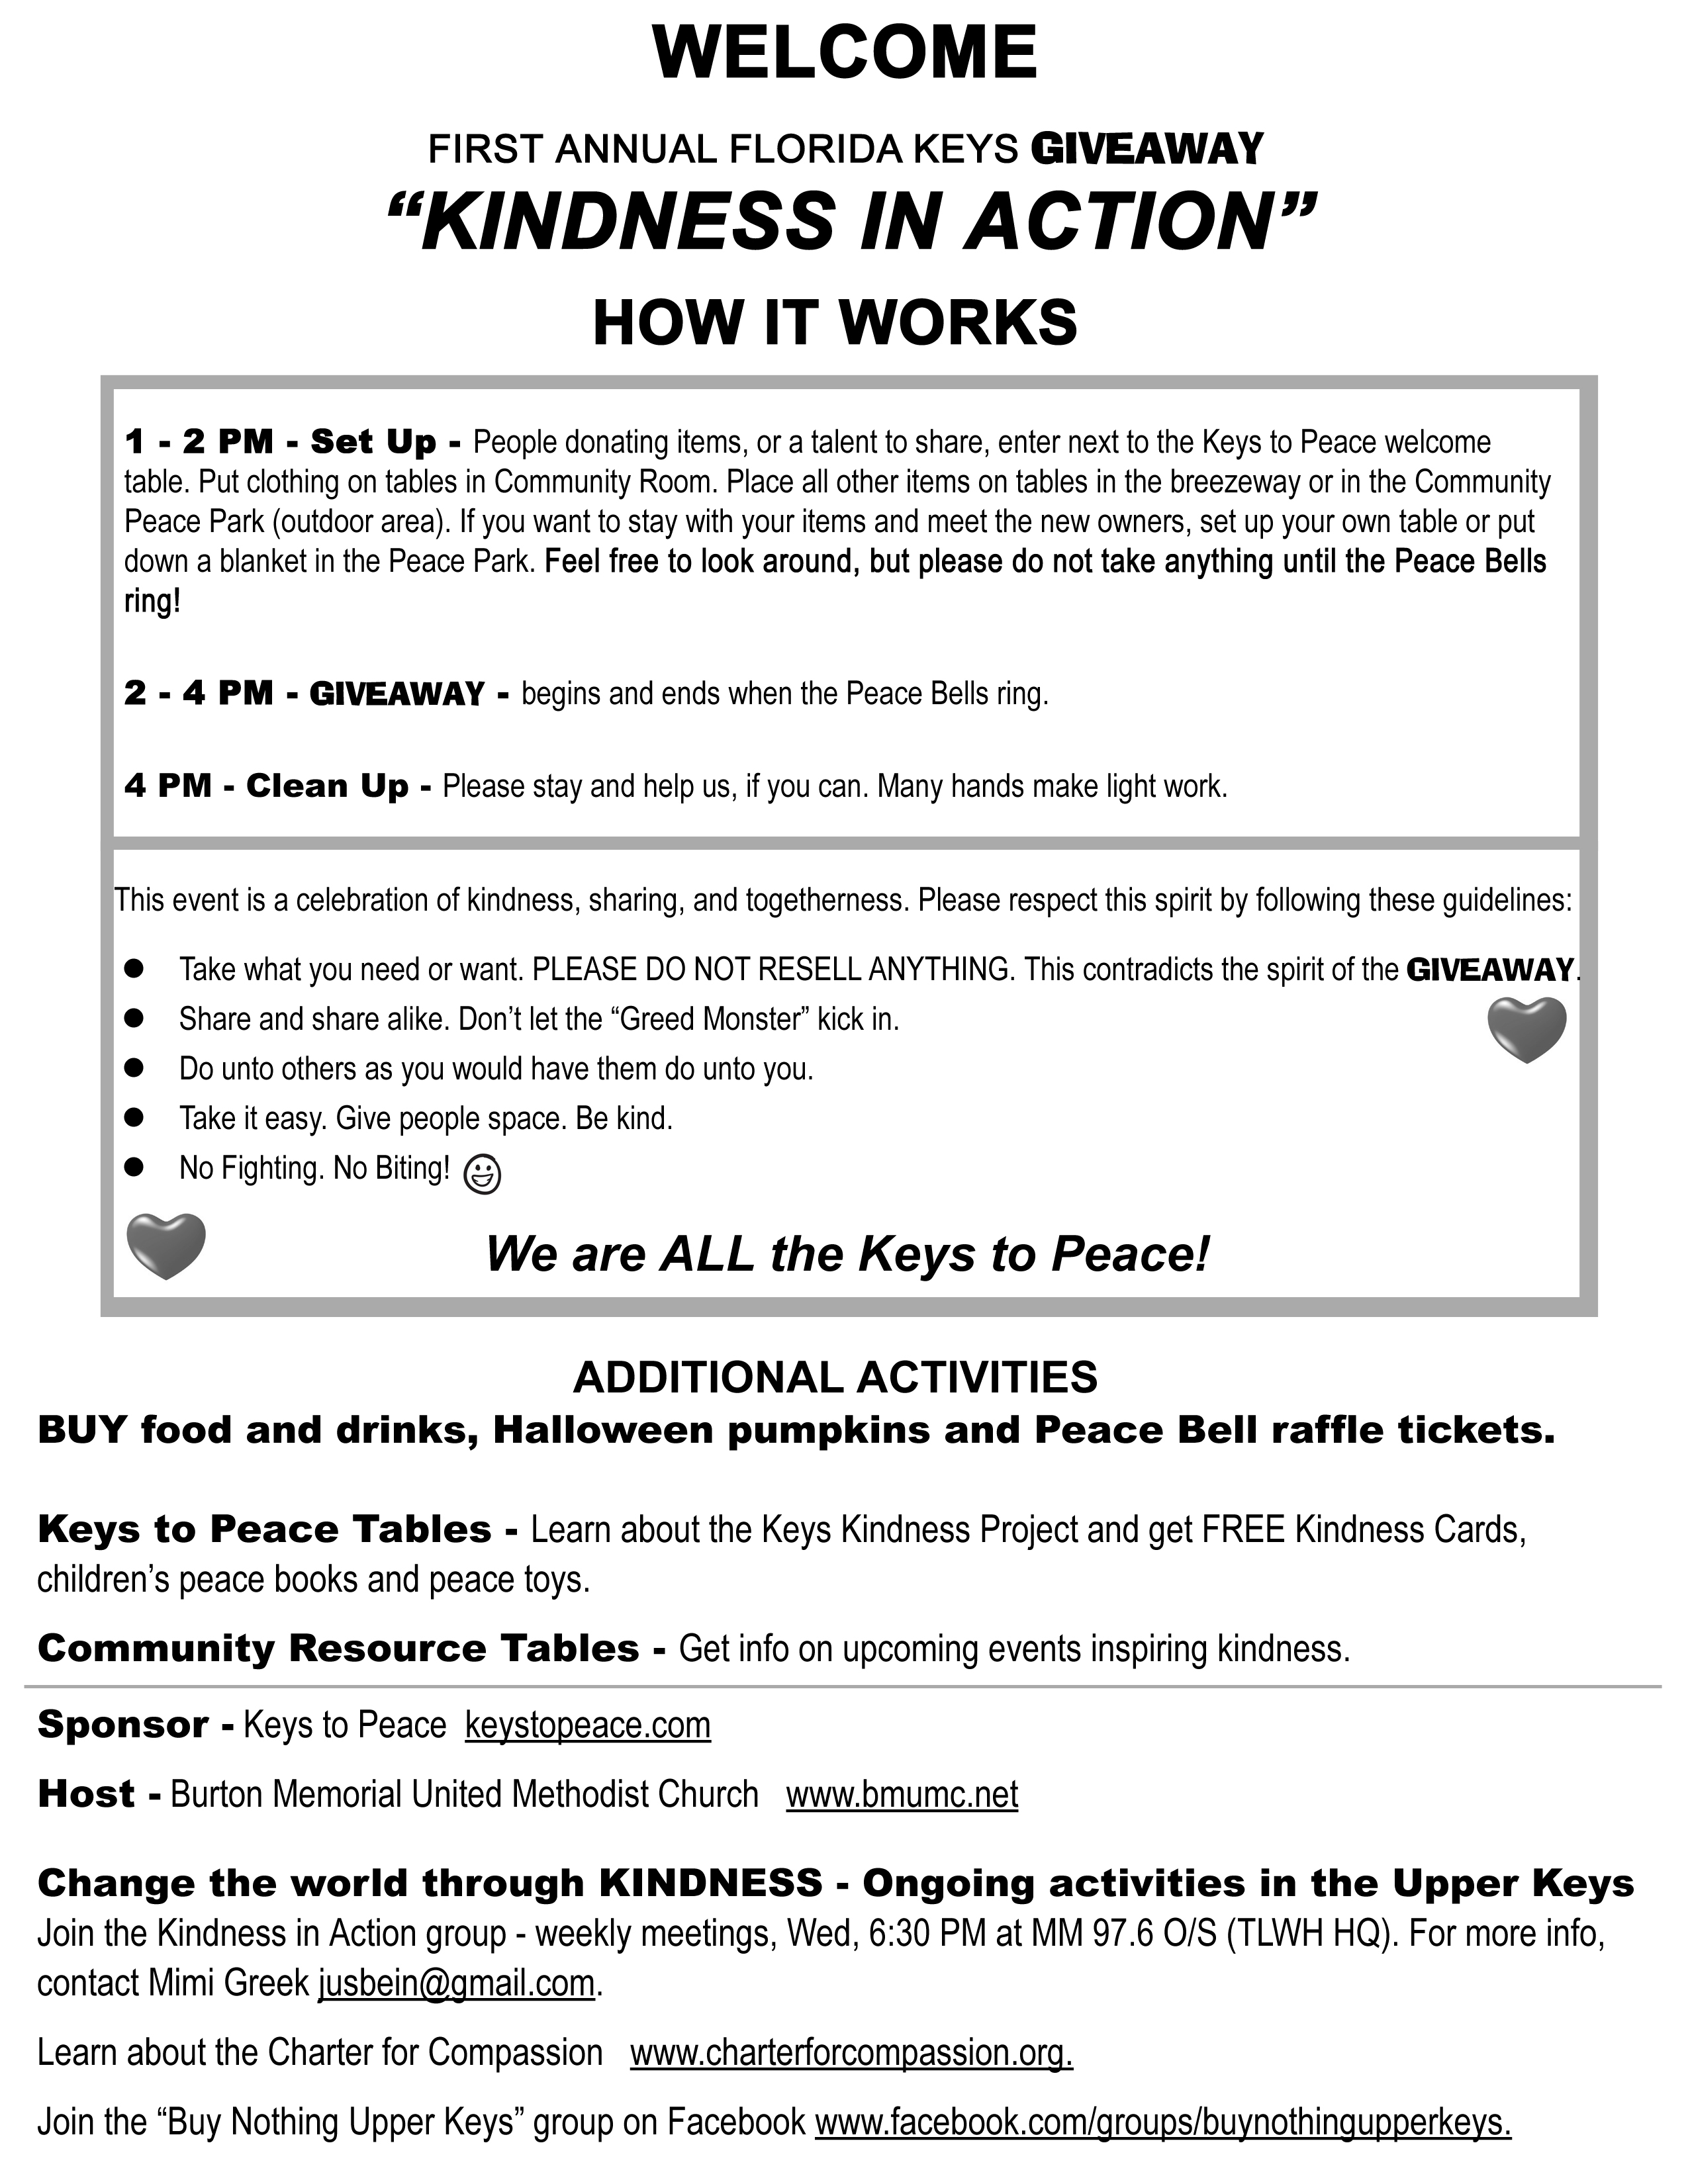 giveaway instructions (English)